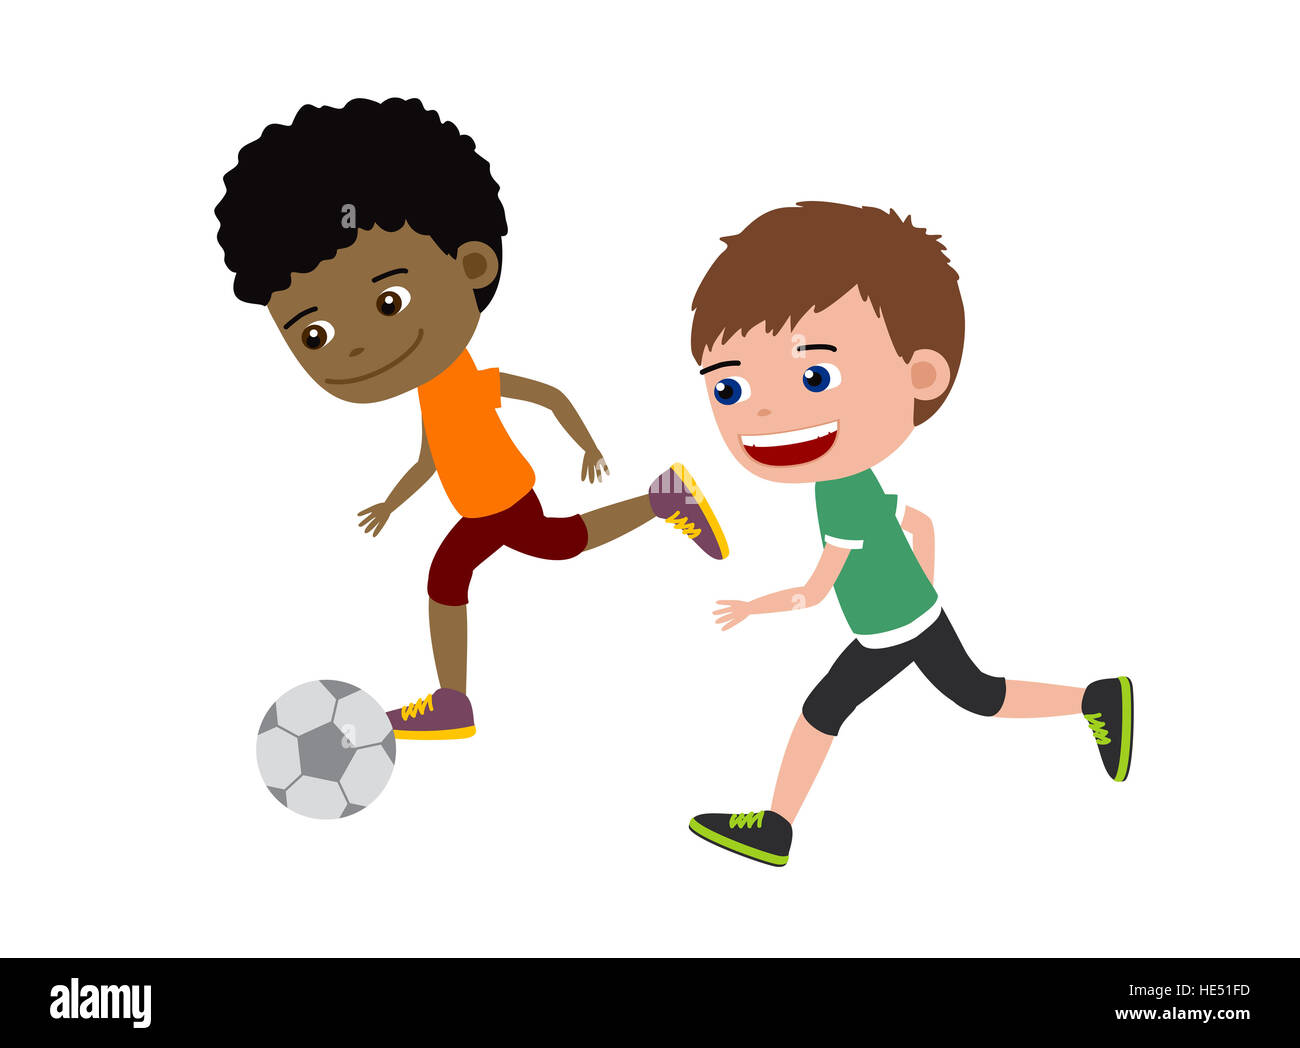 Football Boys Cartoon Illustration Of Two Kids Playing Football